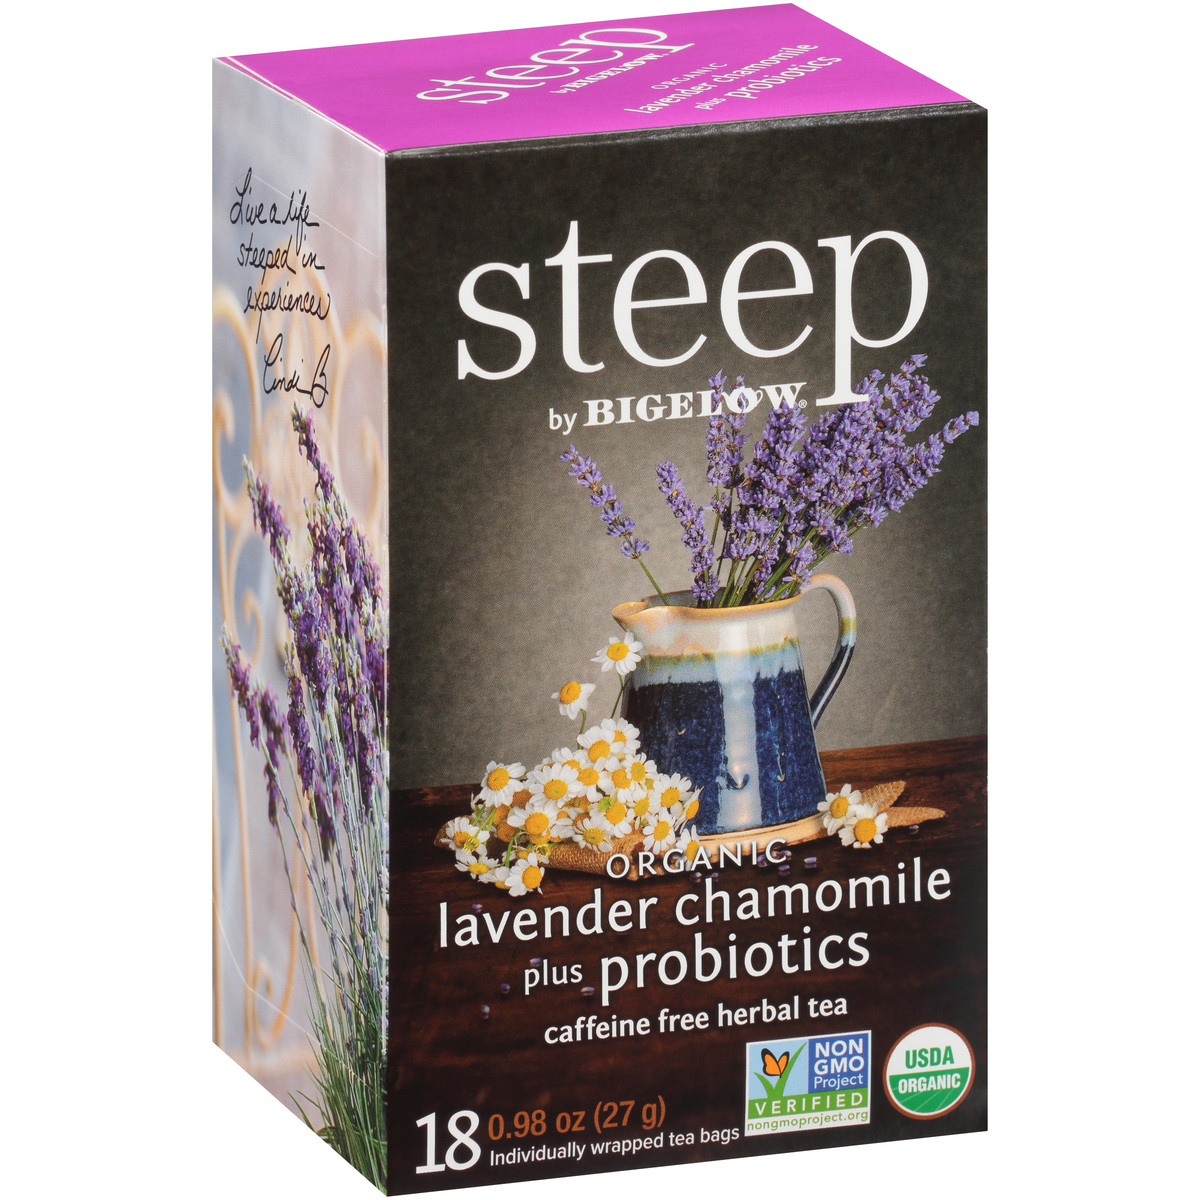 lavender chamomile with probiotics herbal tea - case of 6 boxes - total of 108 tea bags